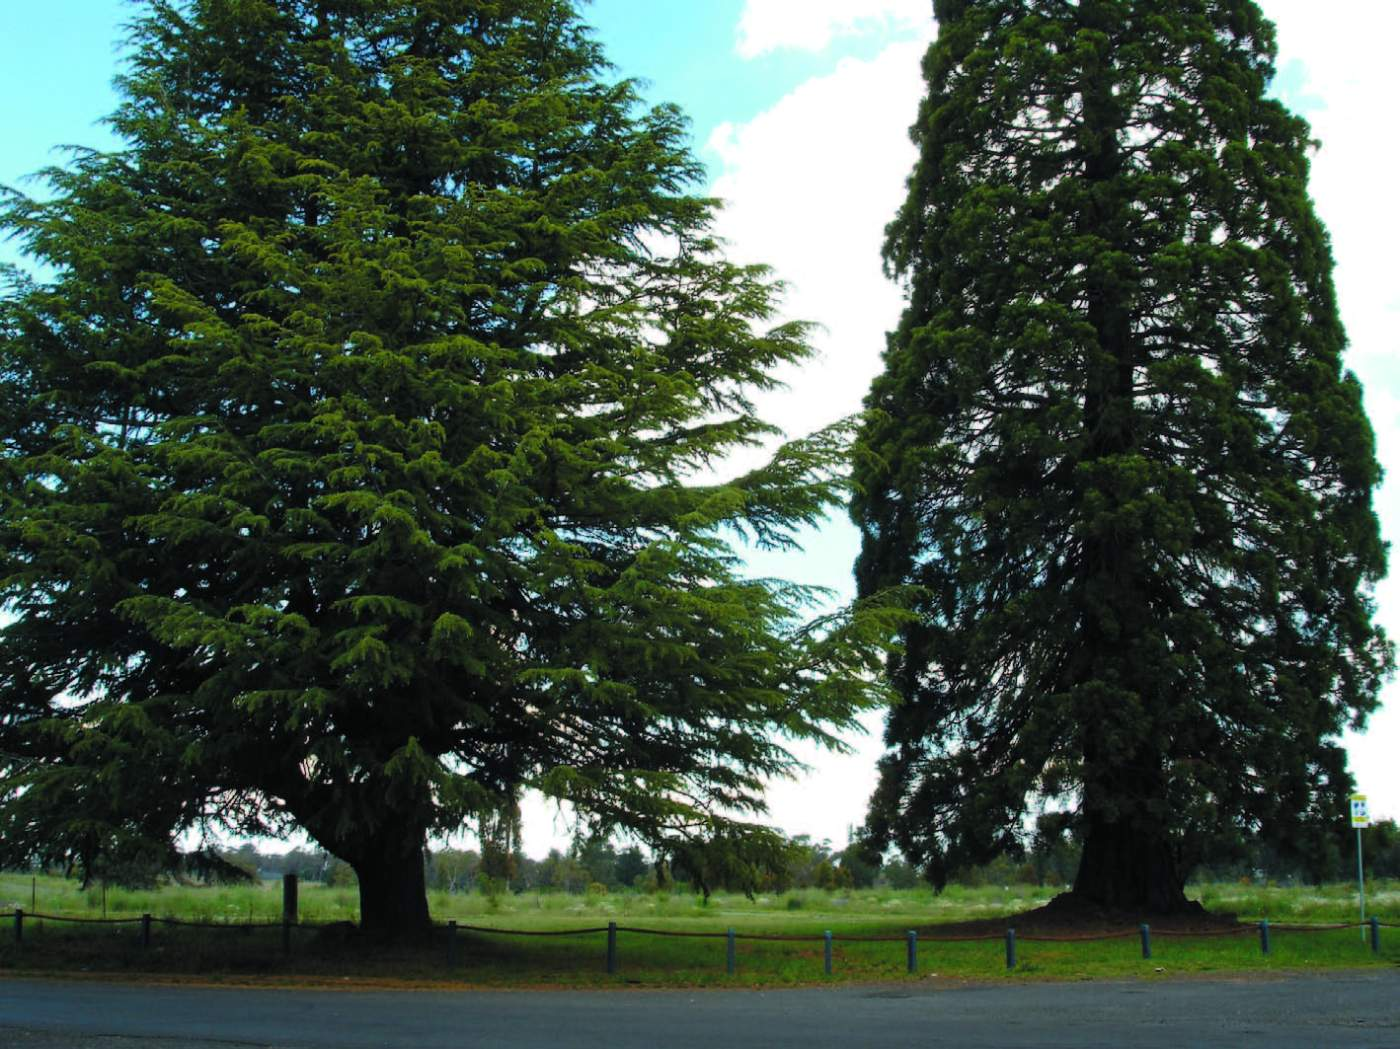 The broad canopy of Cedar (left), contrasts to the narrow upright form of the Giant Sequoia (right).